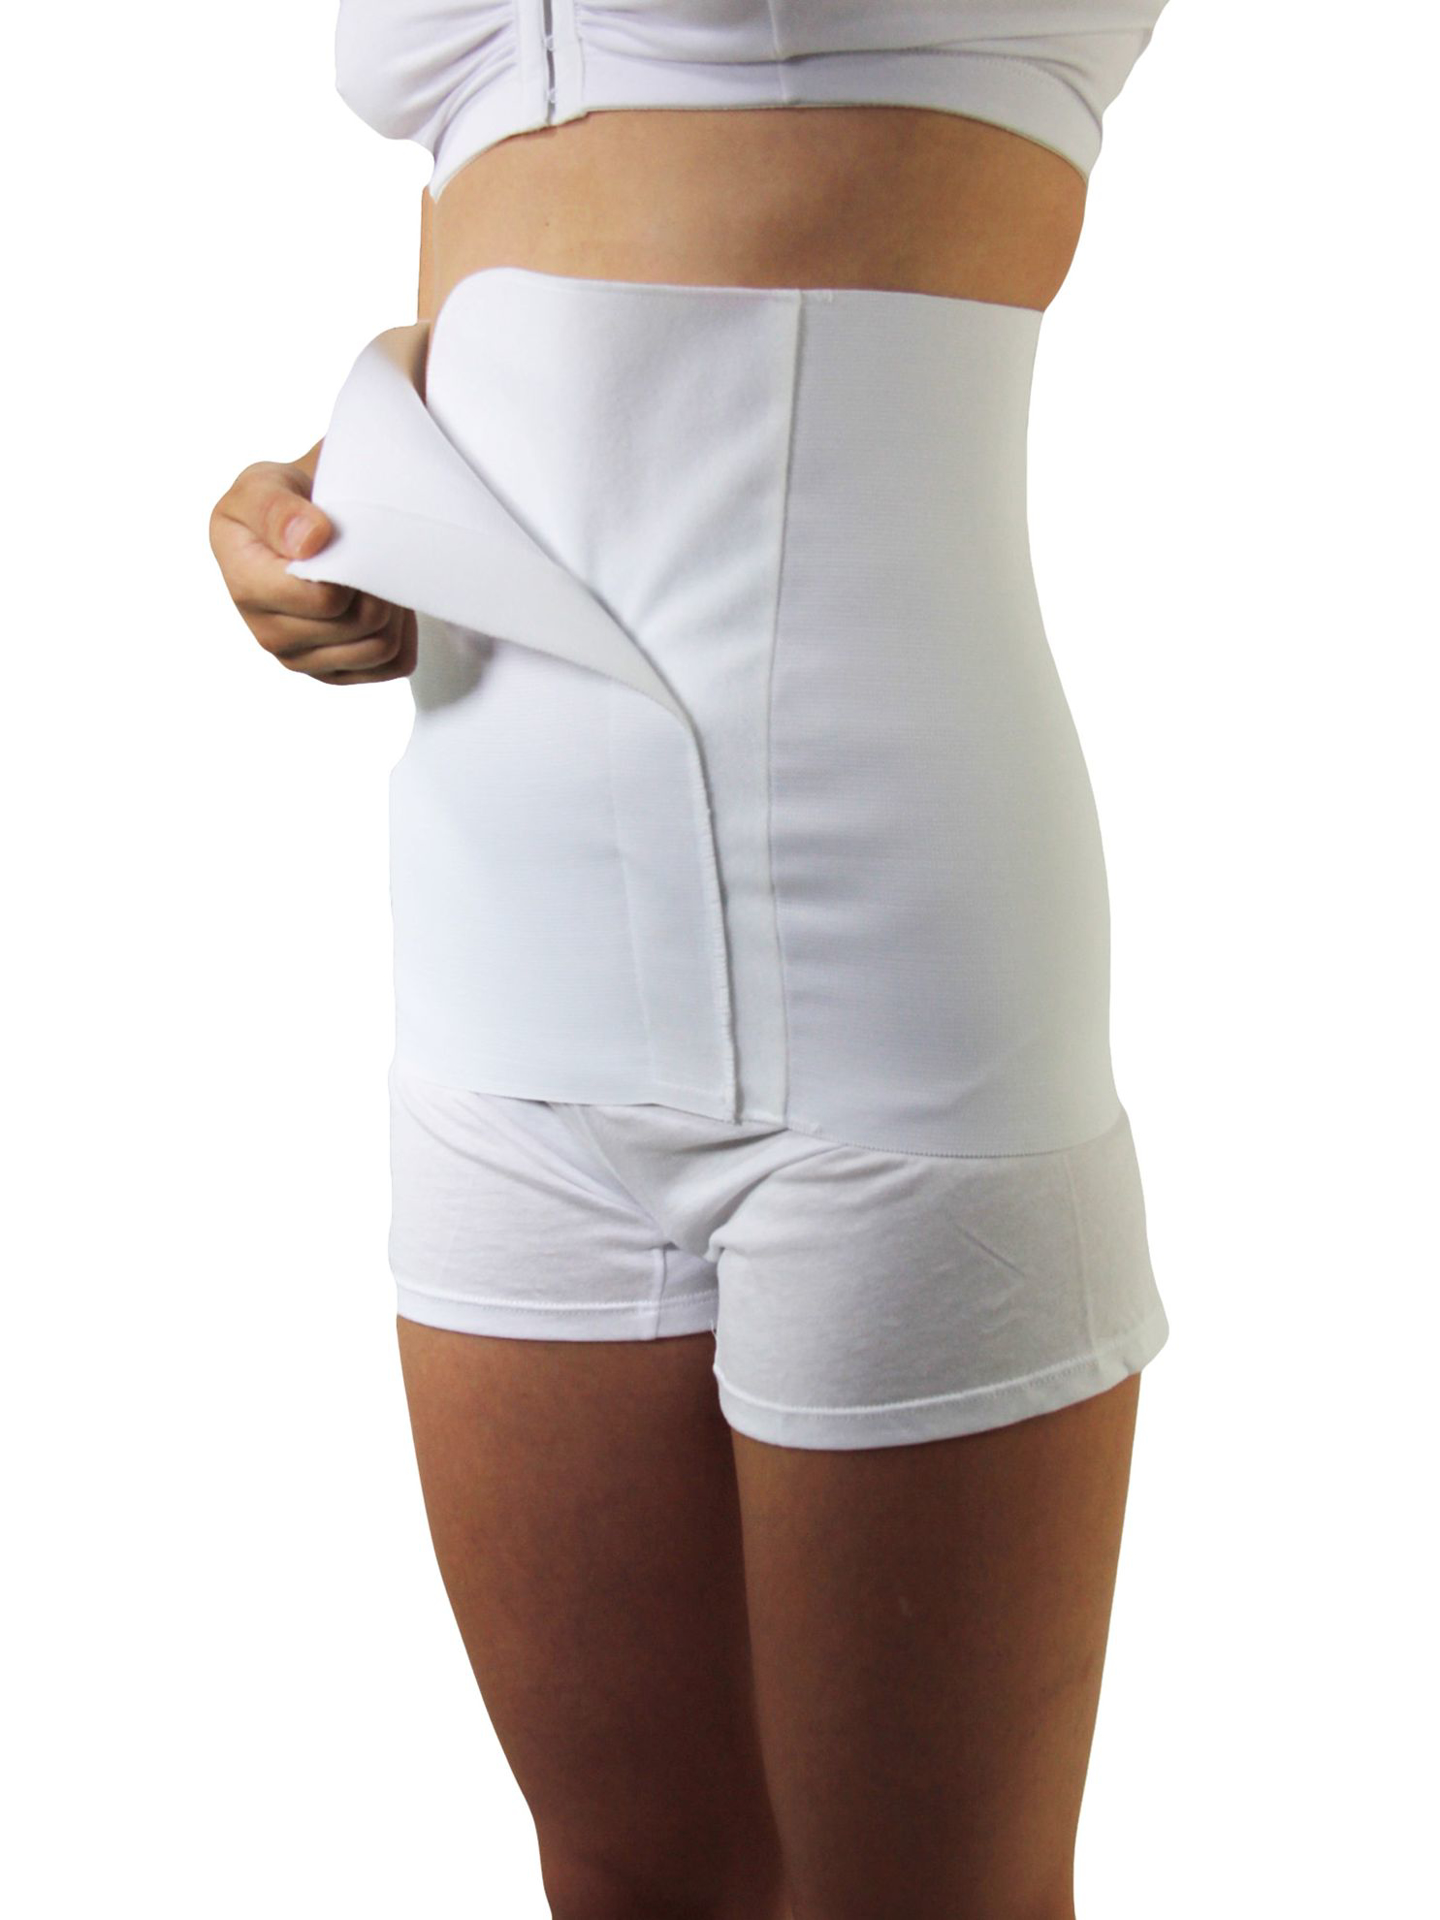 Picture of Post Delivery Abdominal Binder 12-inch with Velcro Closure